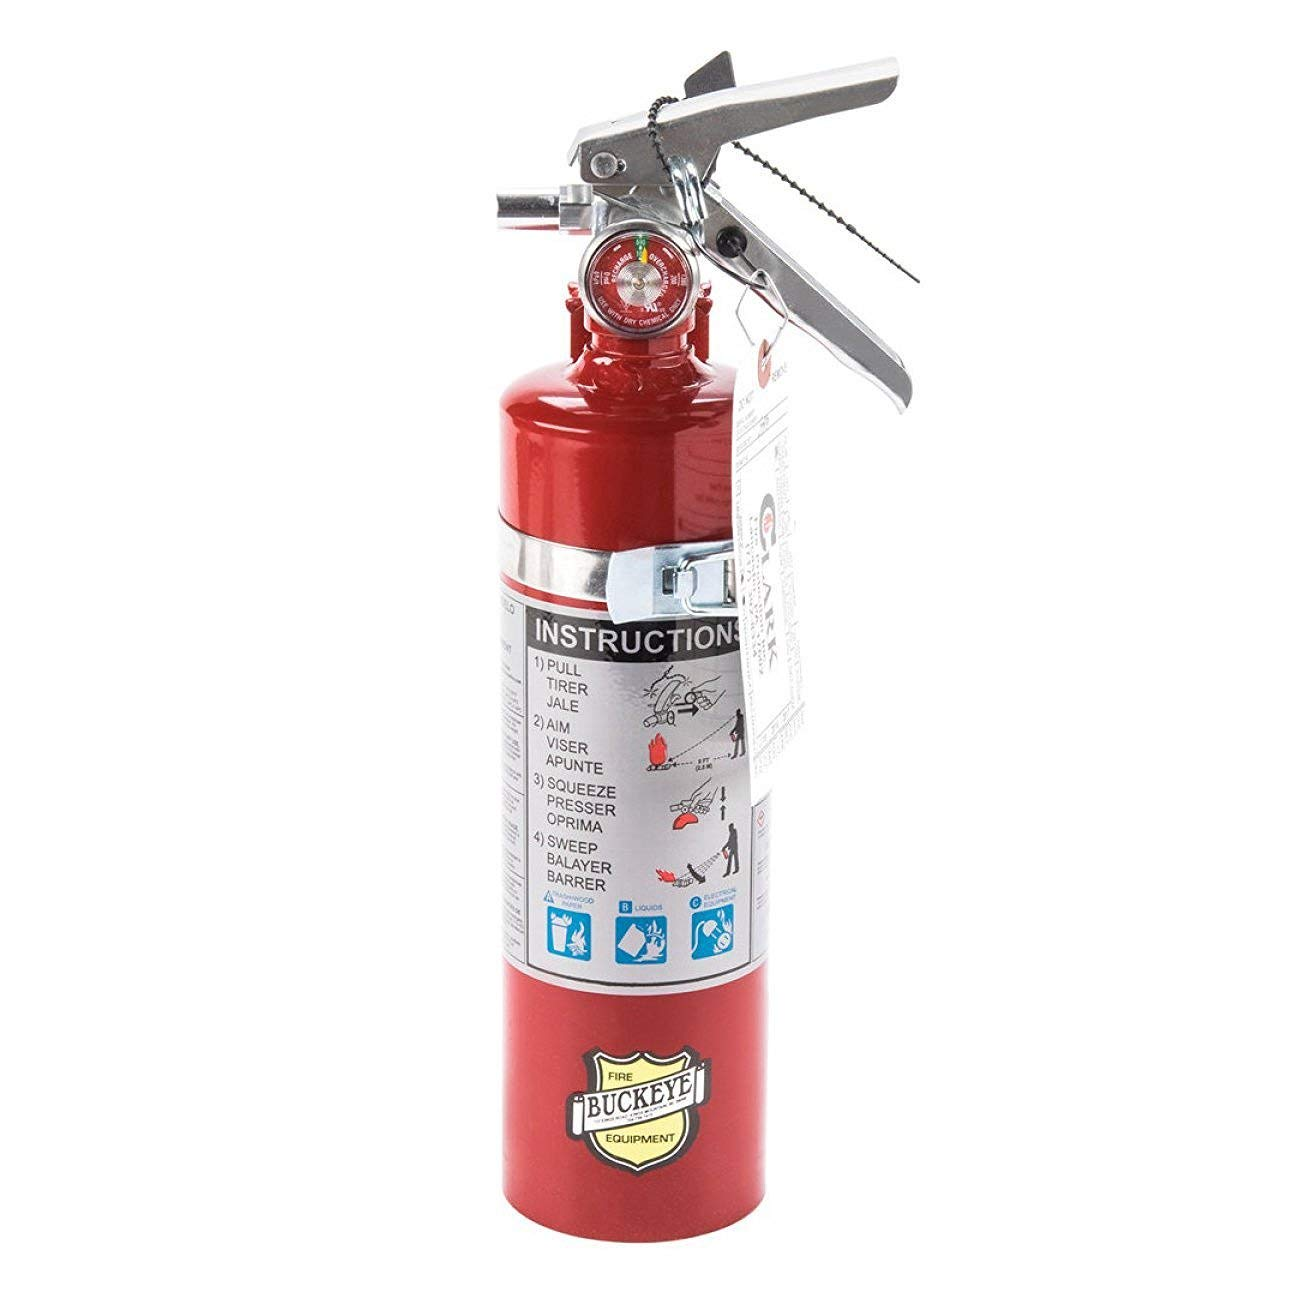 Fire Buckeye Equipment Type ABC Dry Chemical Fire Extinguishers, with 1 - Vehicle Brackets and 1 - Yellow Inspection Tag